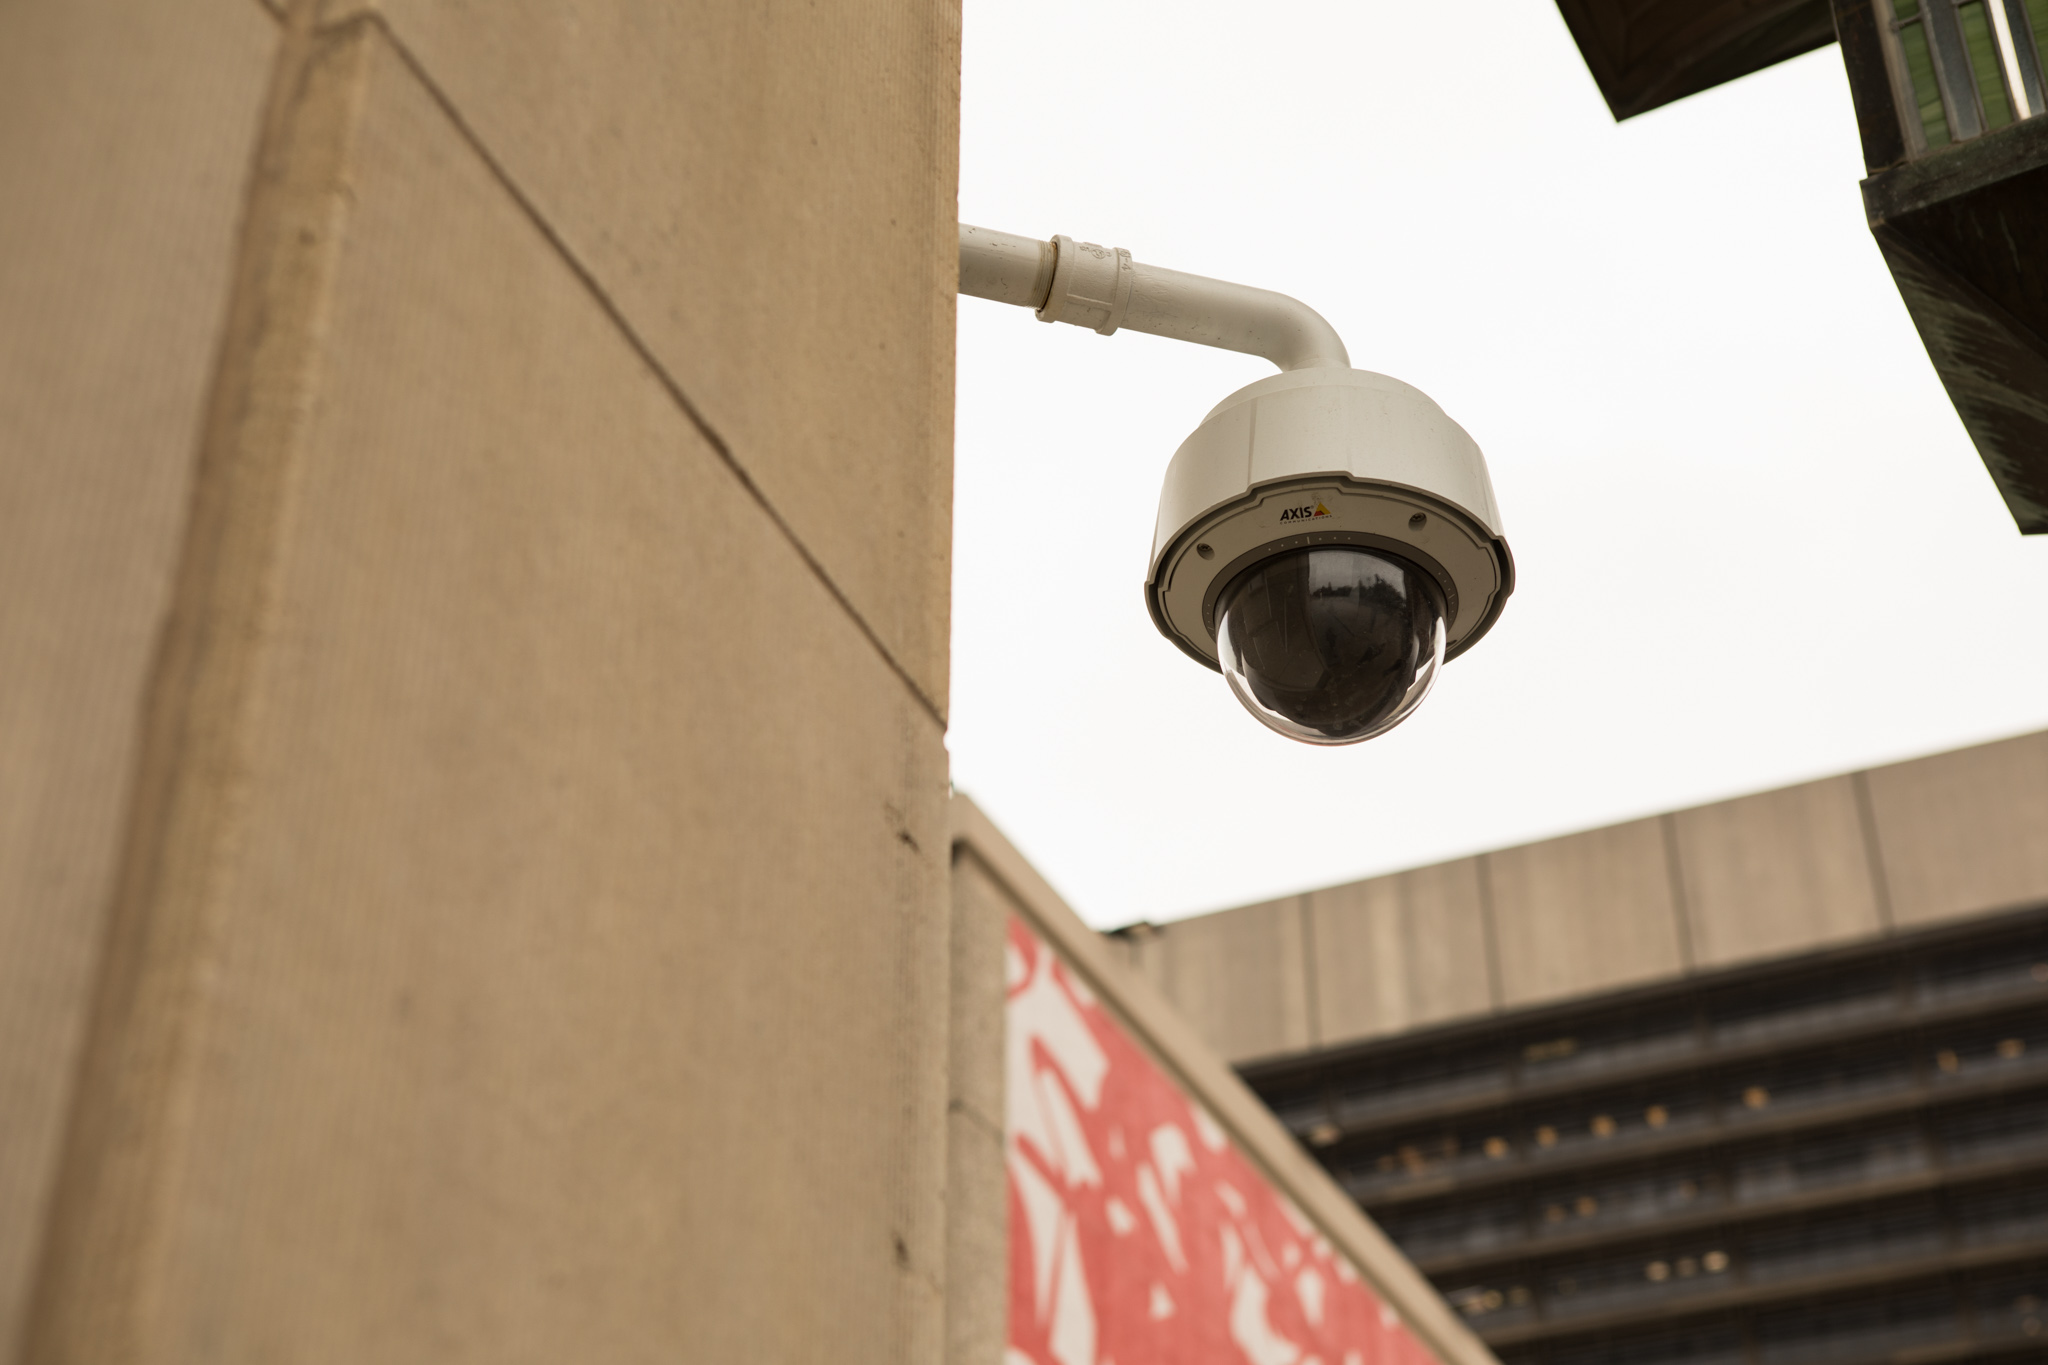 A security camera looks over the Municipal Plaza Building.